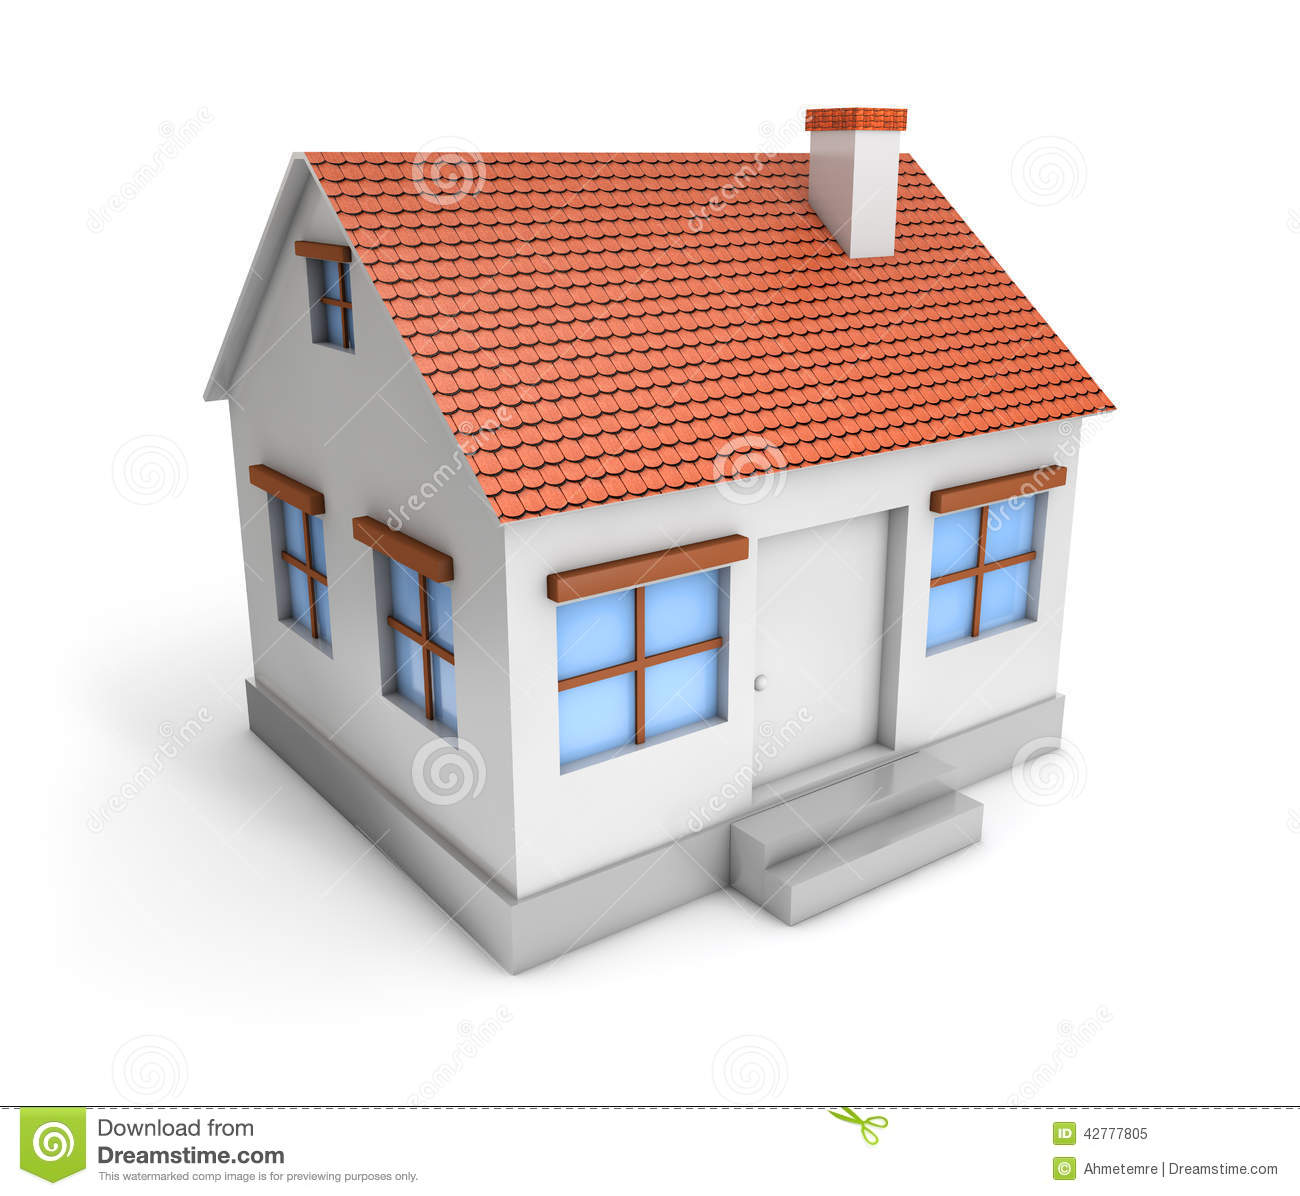 Home 3d Design Online Minimalist: 3d Simple House Stock Illustration. Illustration Of Icon